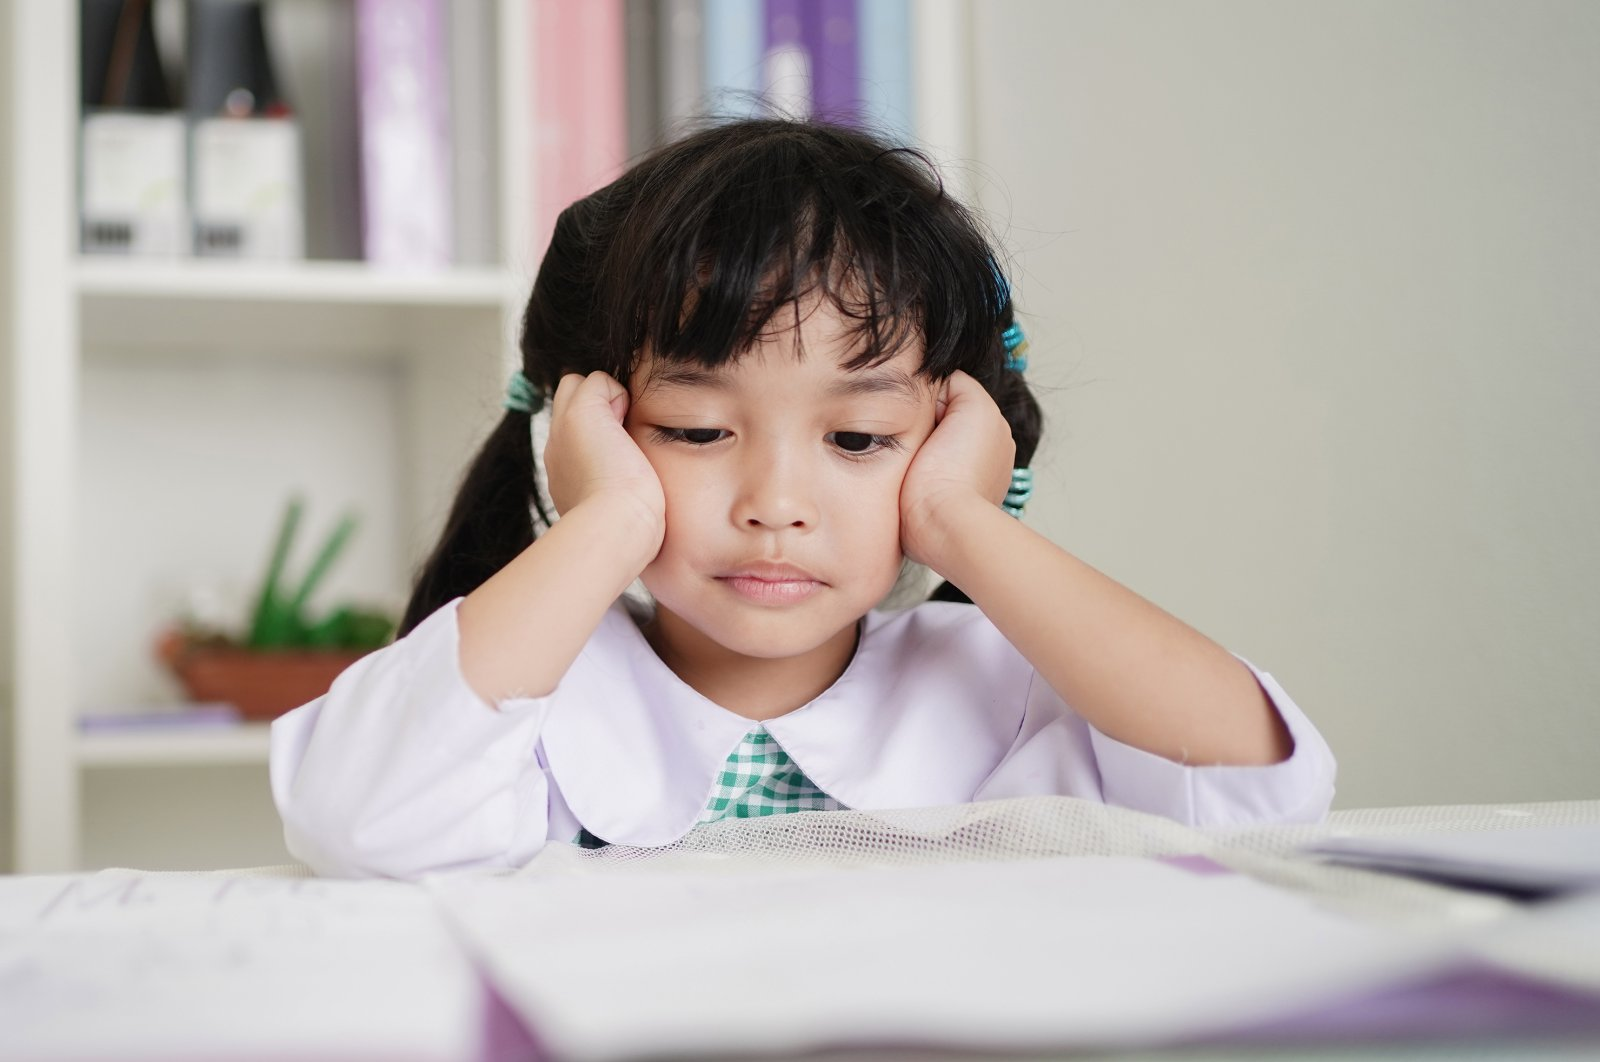 If you catch your child with a frustrated look on their face while studying, try to get them to move around a bit. (Shutterstock Photo)